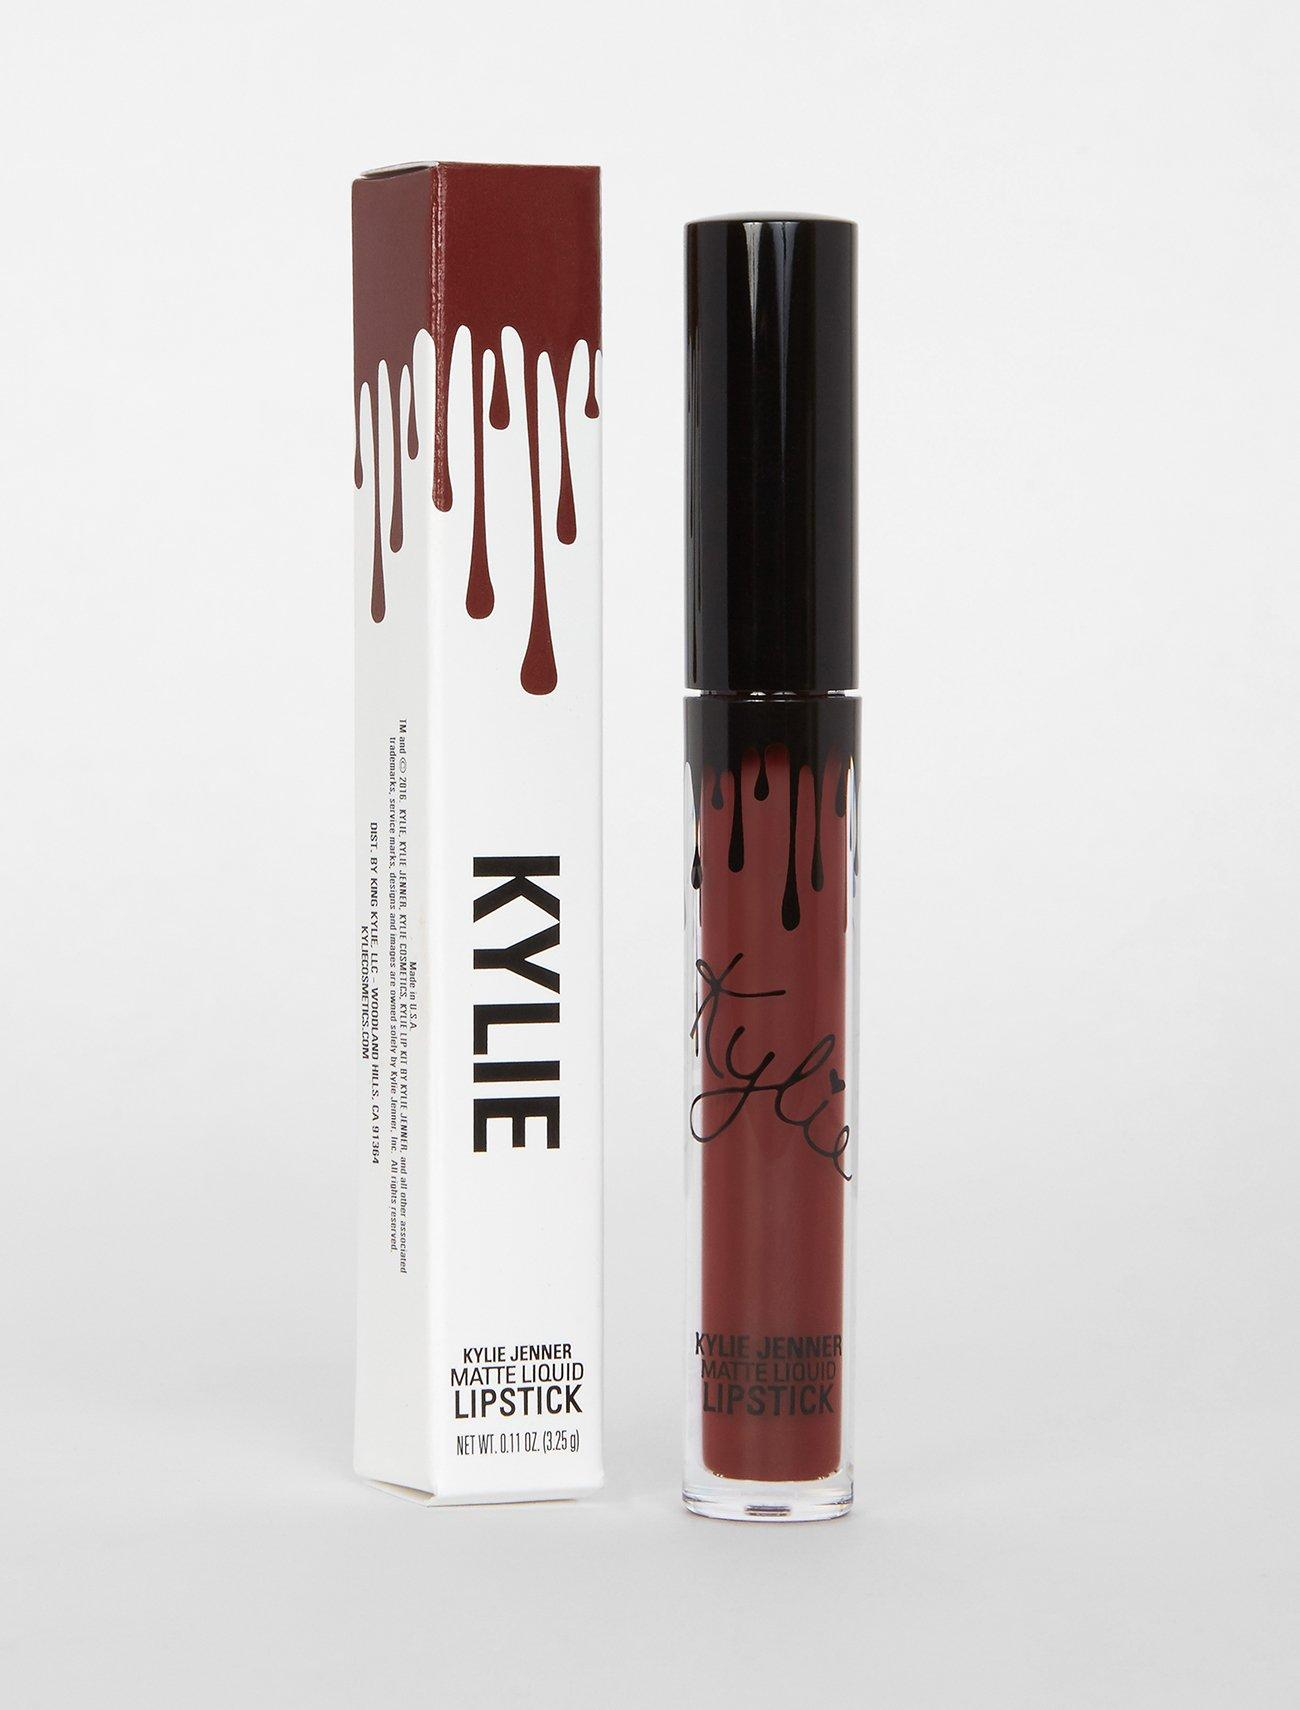 Buy Kylieponds Health Beauty At Best Prices Online In Myanmar Ponds Flawless White Ultra Luminous Serum 30ml Kylie Matte Liquid Lipstick